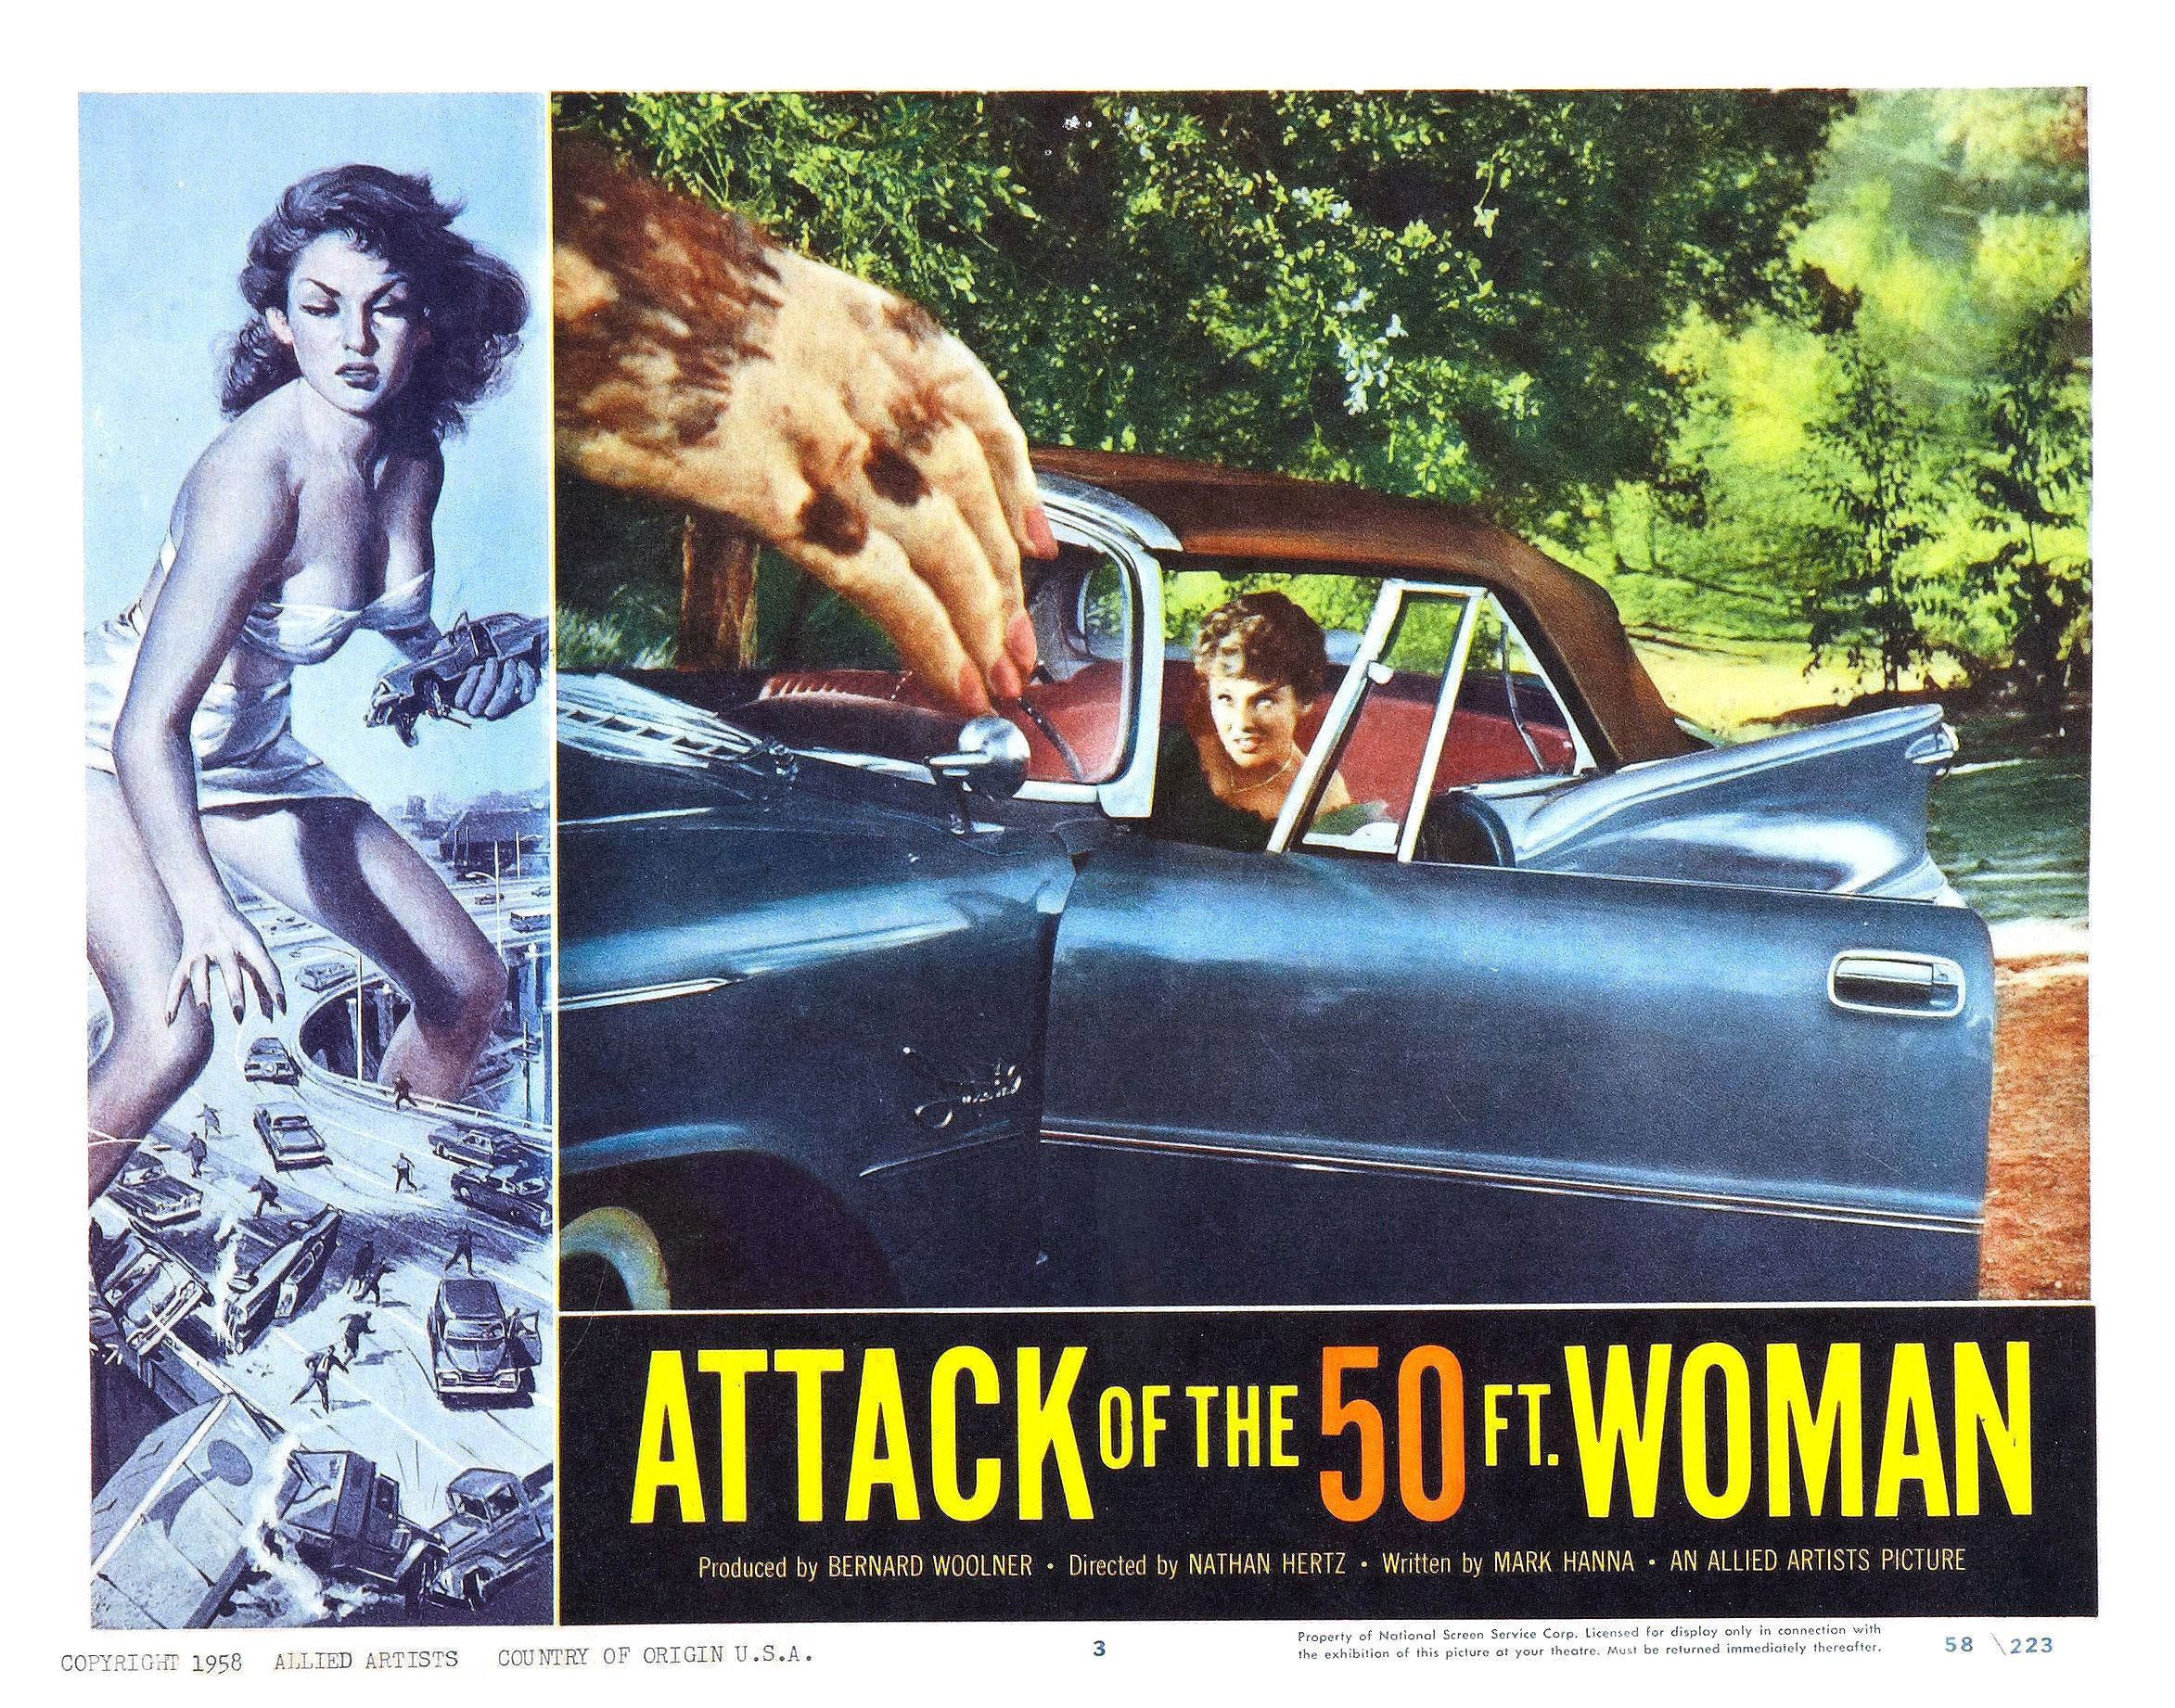 attack of the 50 foot woman Looking for movie tickets enter your location to see which movie theaters are  playing attack of the 50 foot woman (1958) near you enter city, state or .